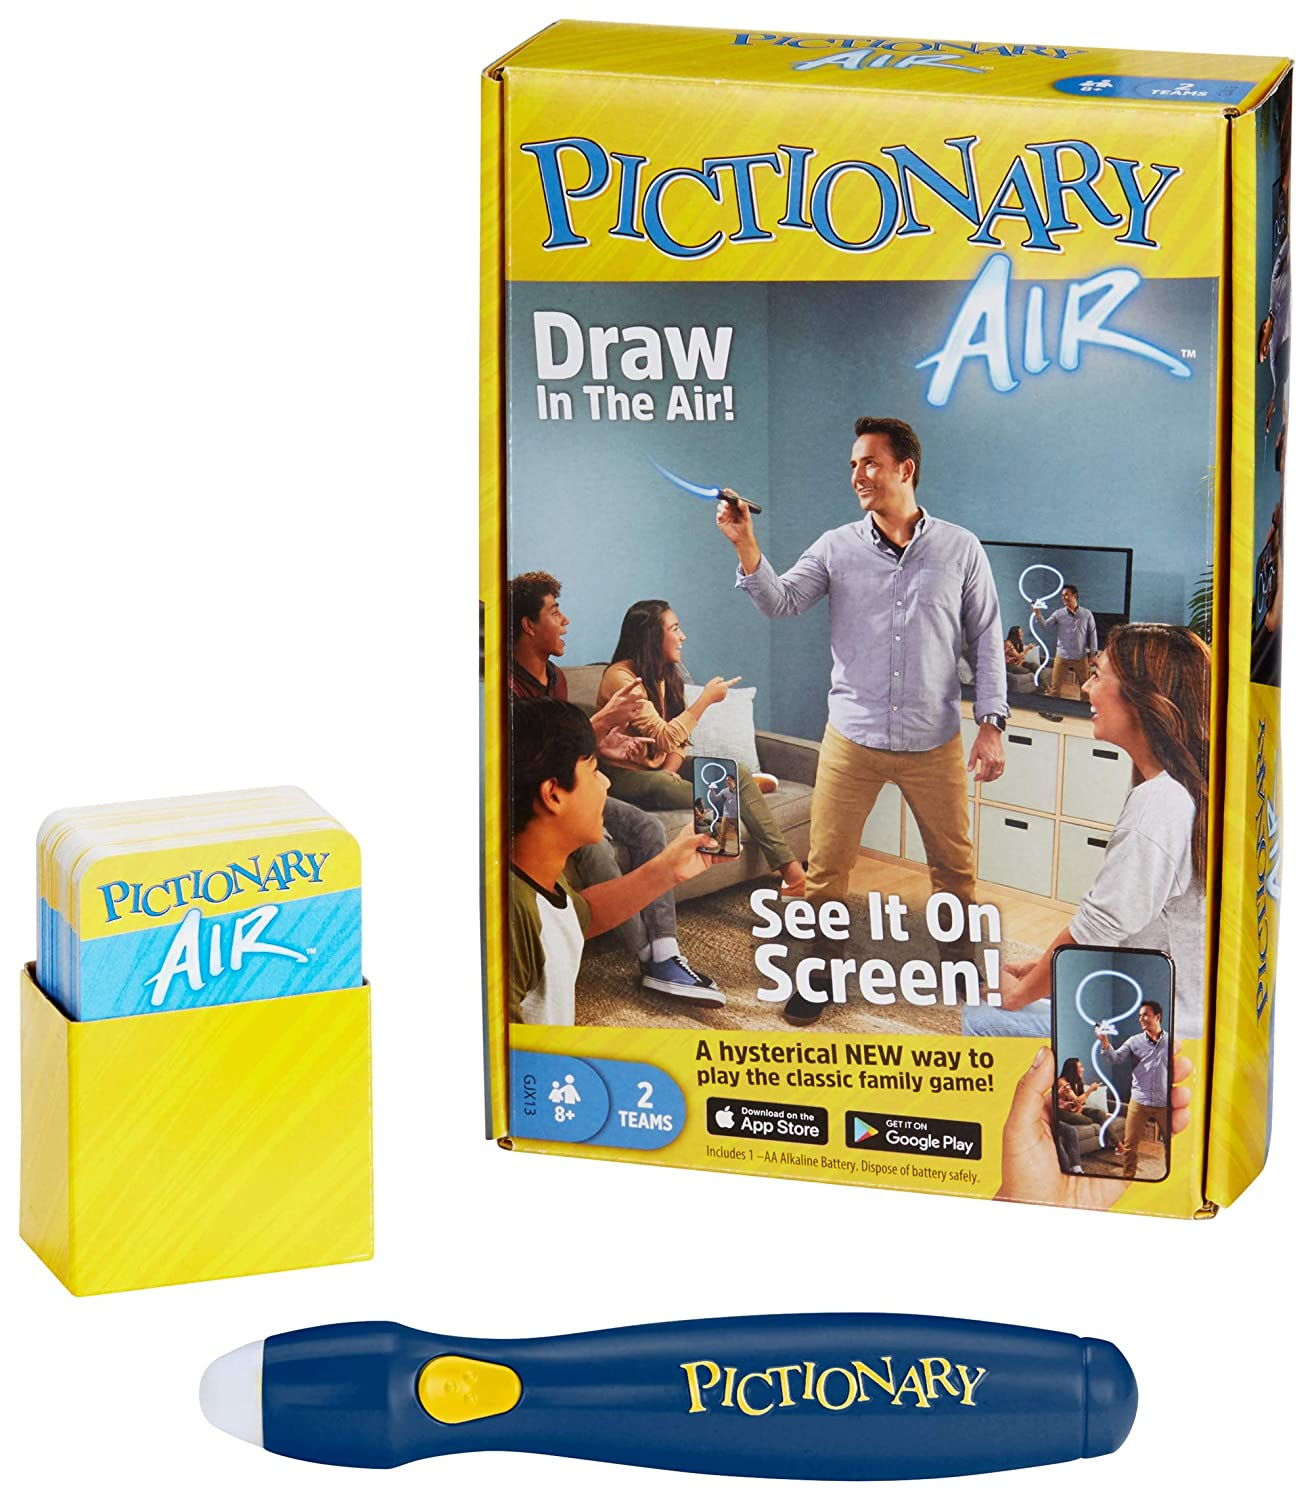 Image result for pictionary air amazon